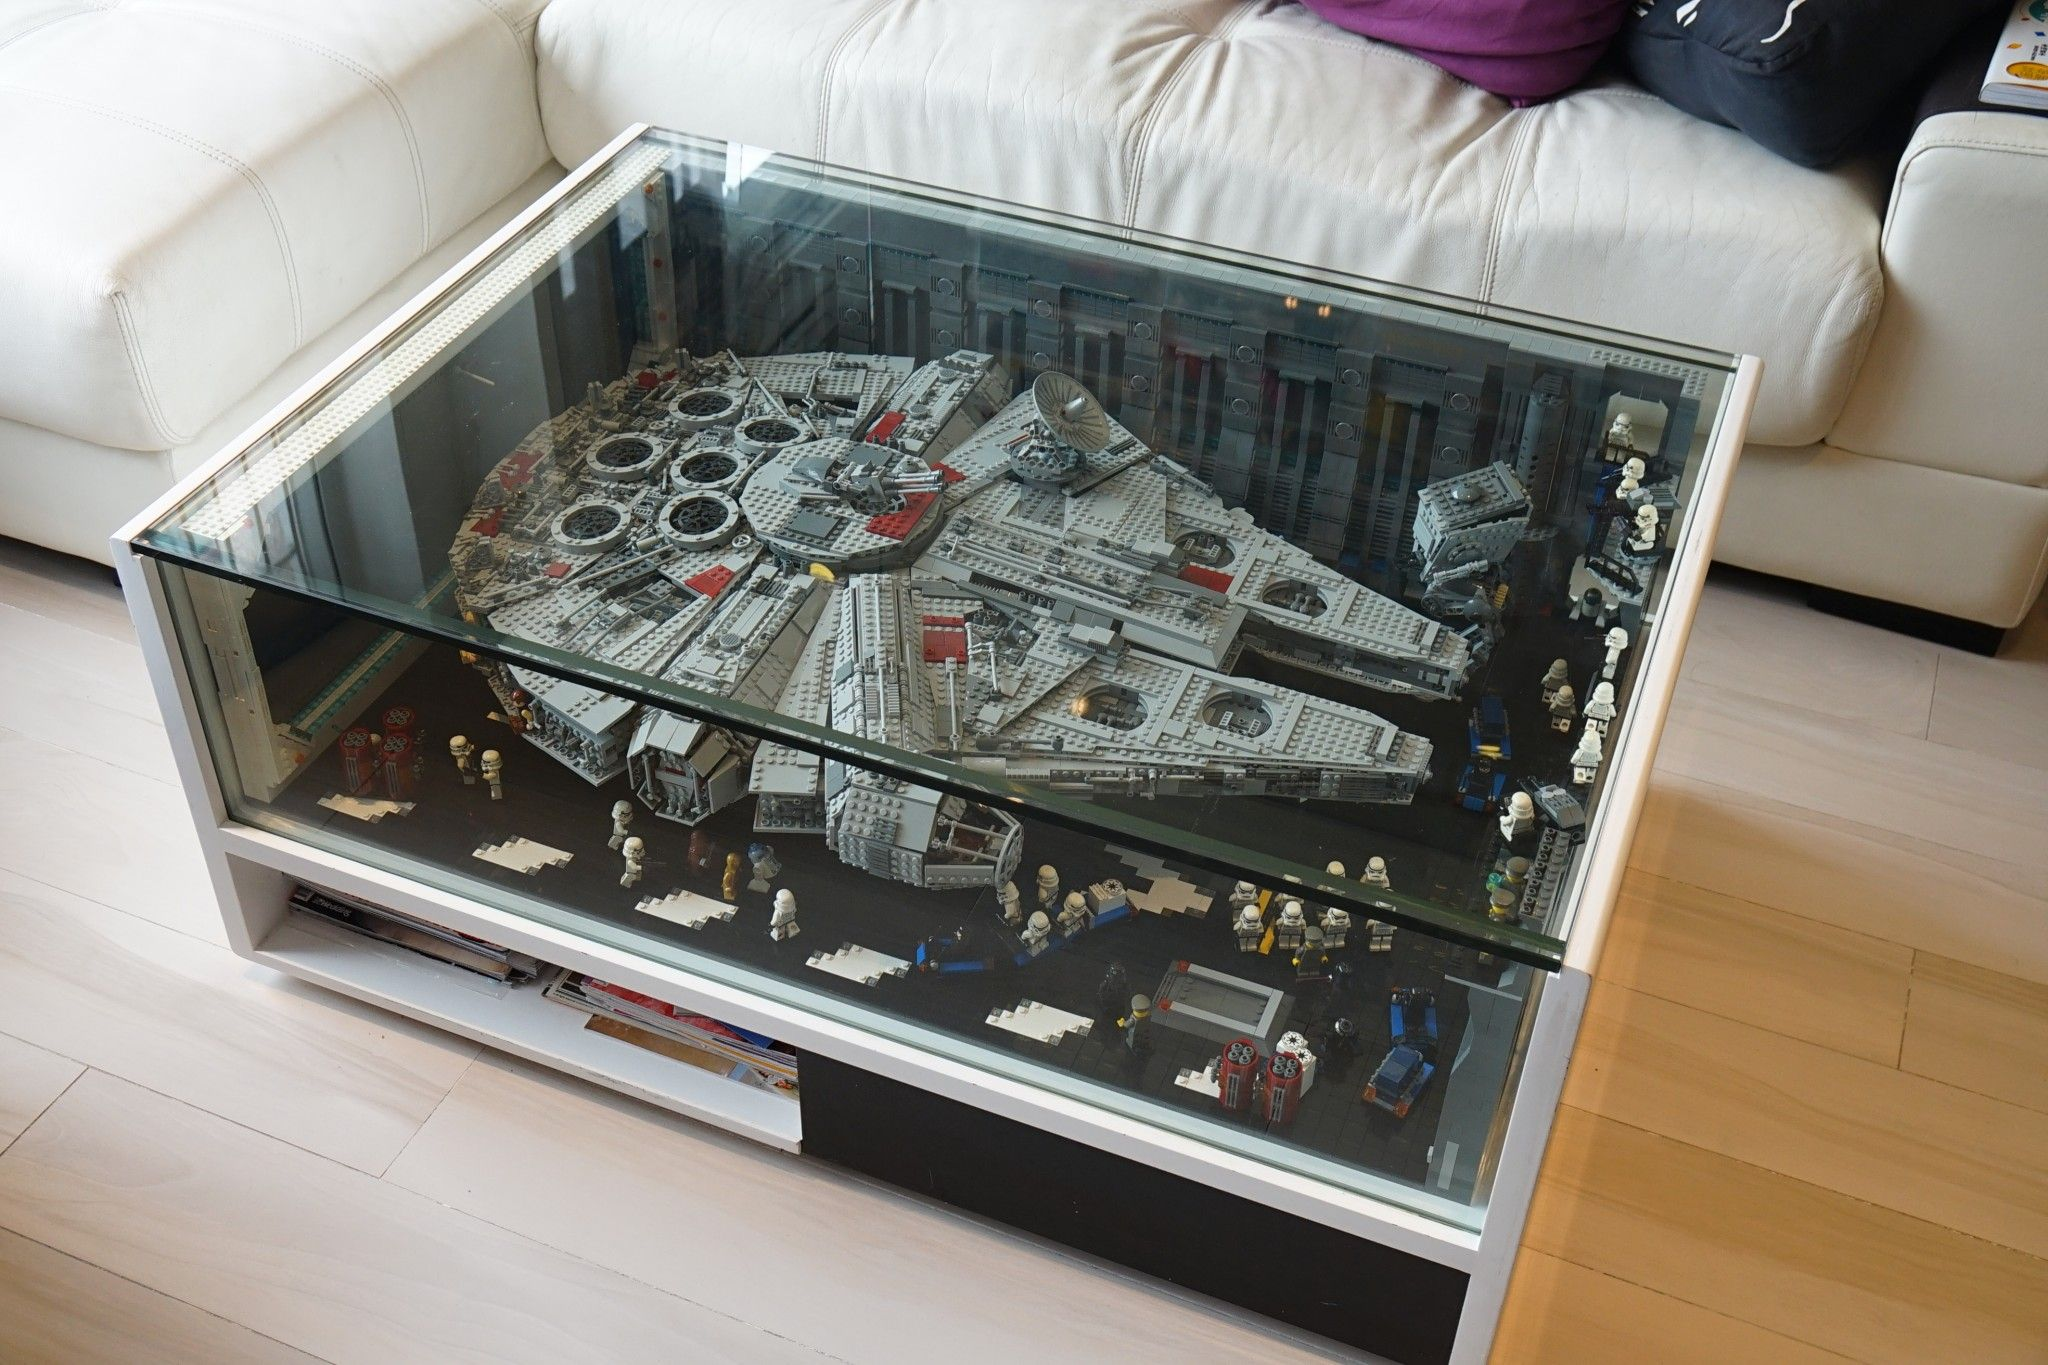 millennium falcon vitrinentisch lego bei gemeinschaft forum. Black Bedroom Furniture Sets. Home Design Ideas